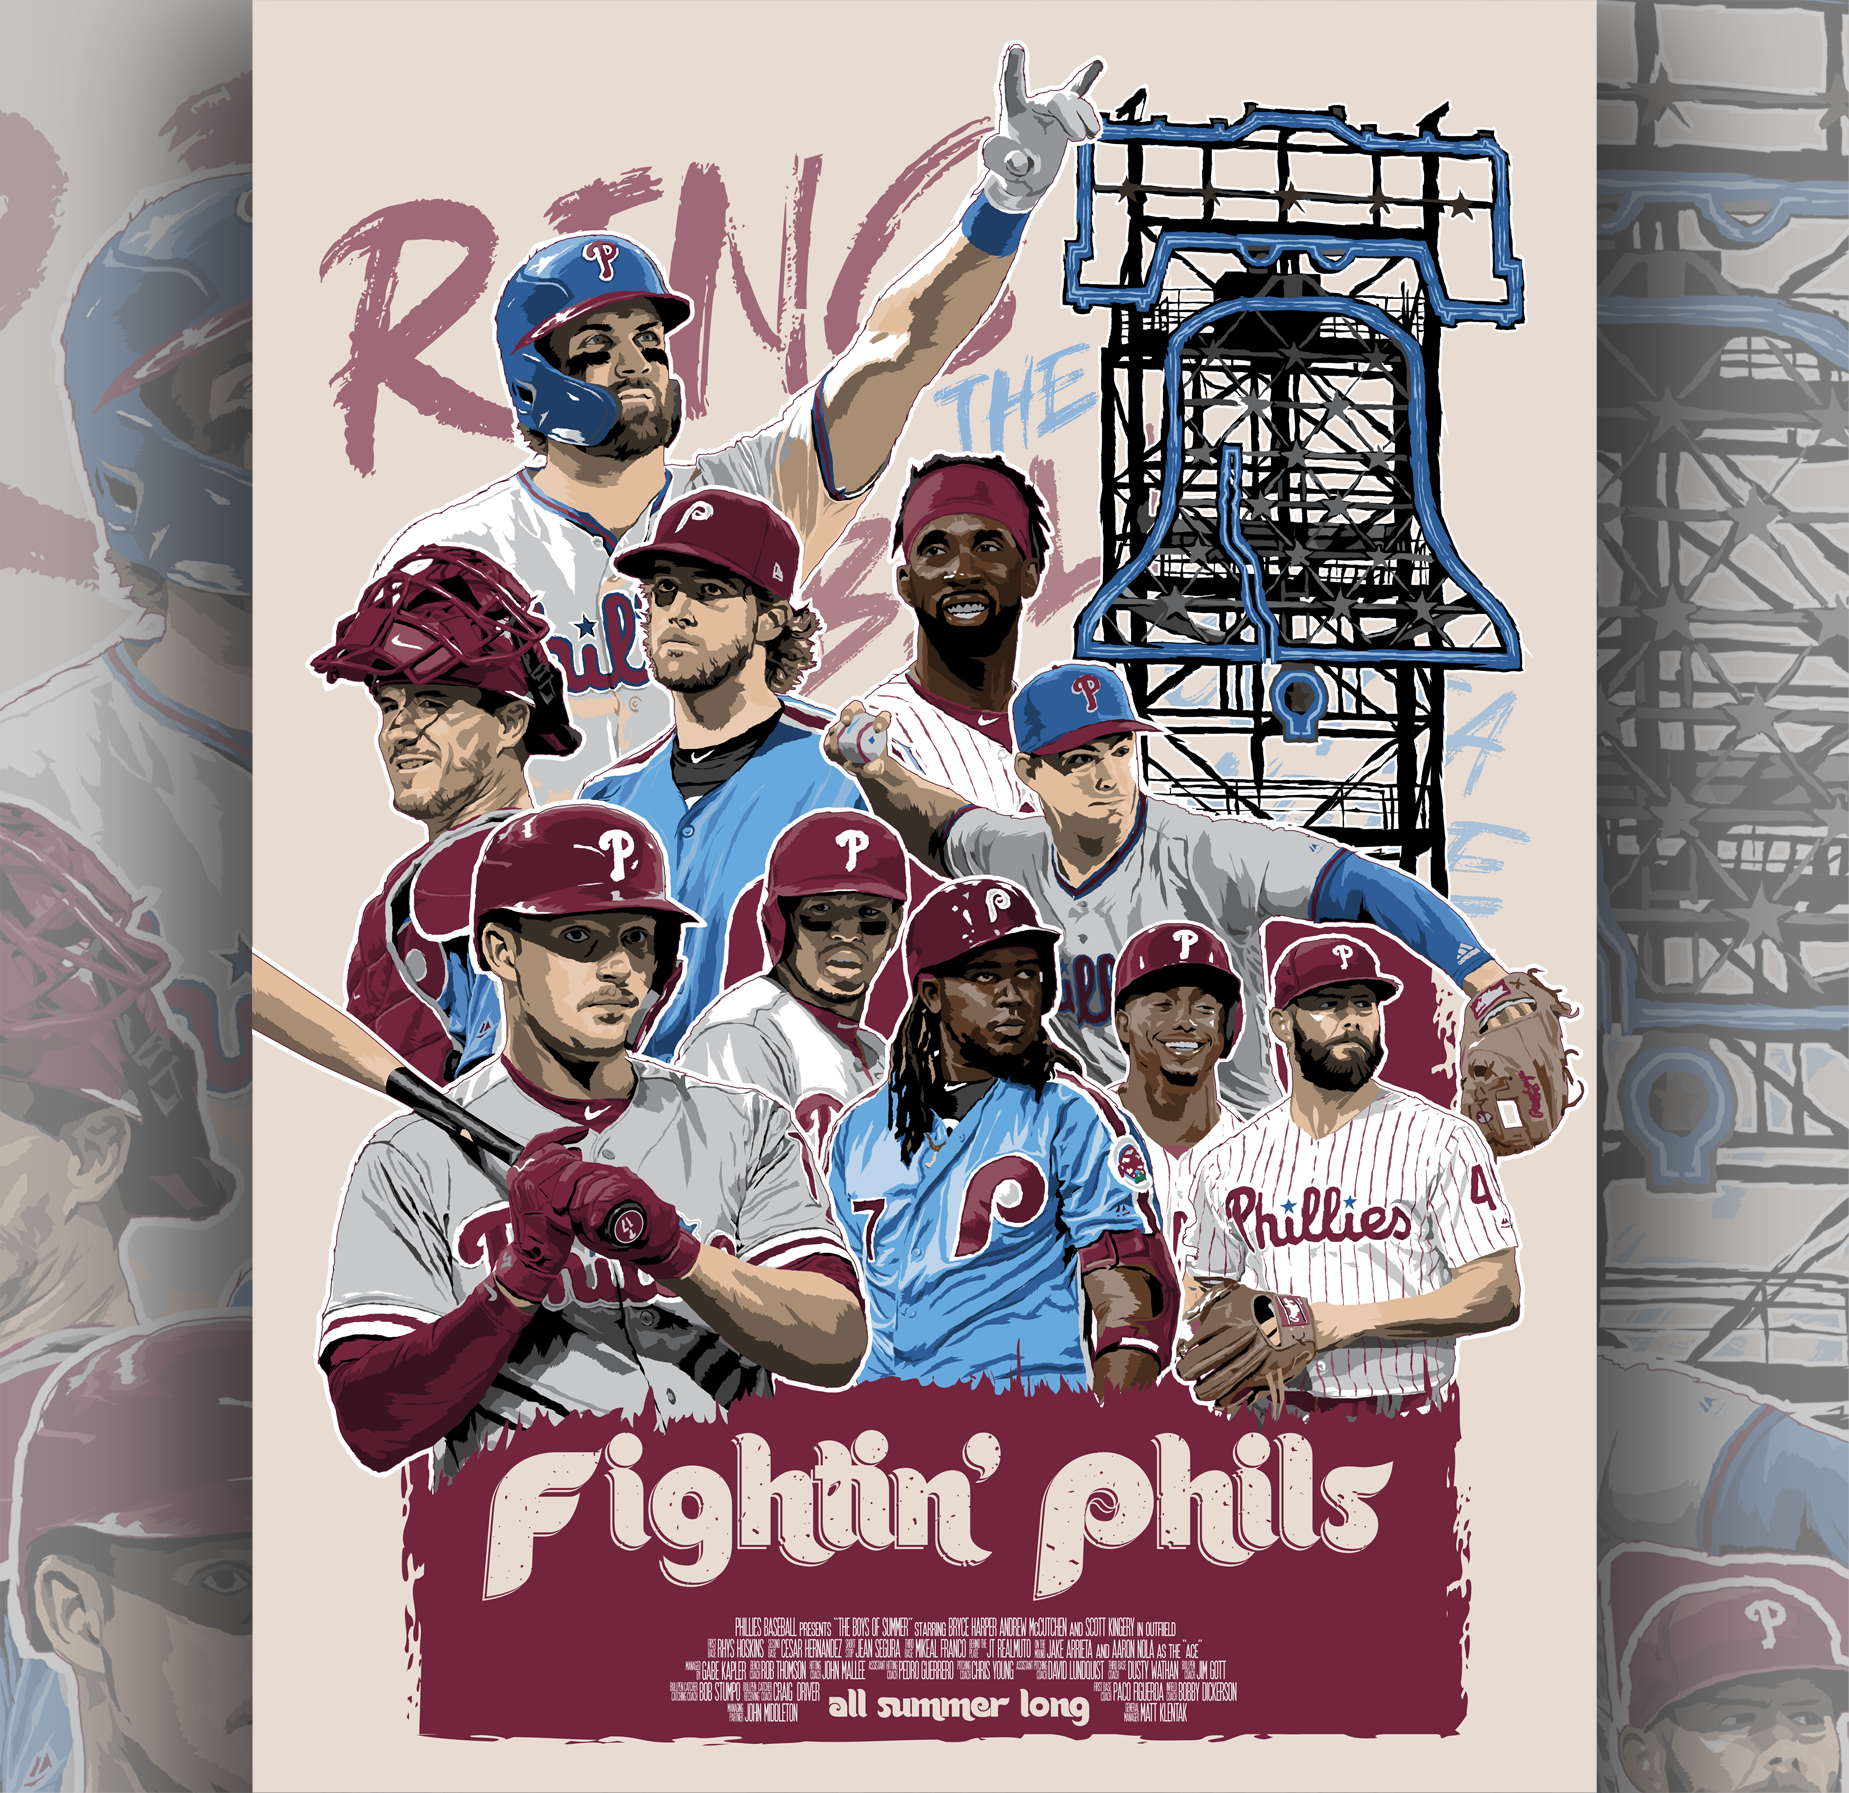 Phillies_Poster_Full.png